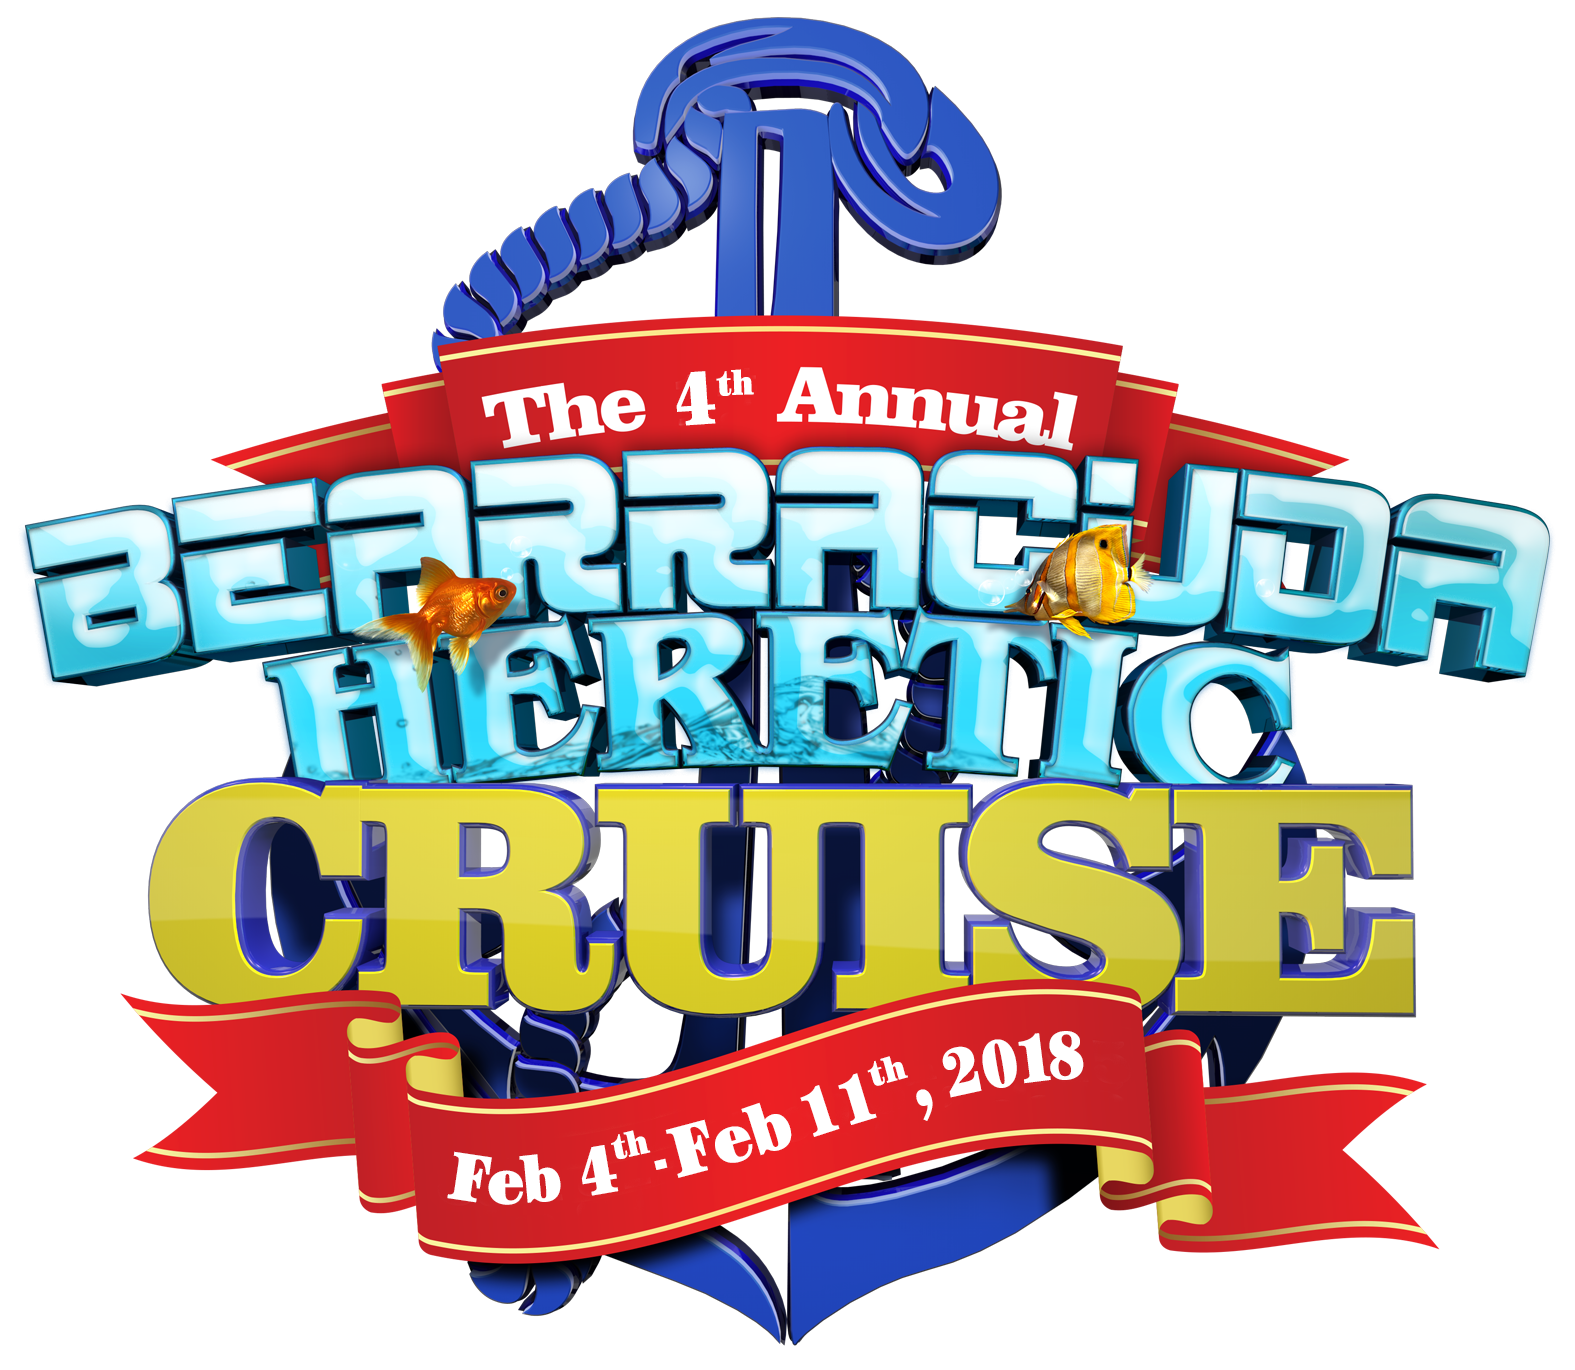 (The Bearracuda Heretic Cruise - Feb 4th - Feb 11th, 2018)